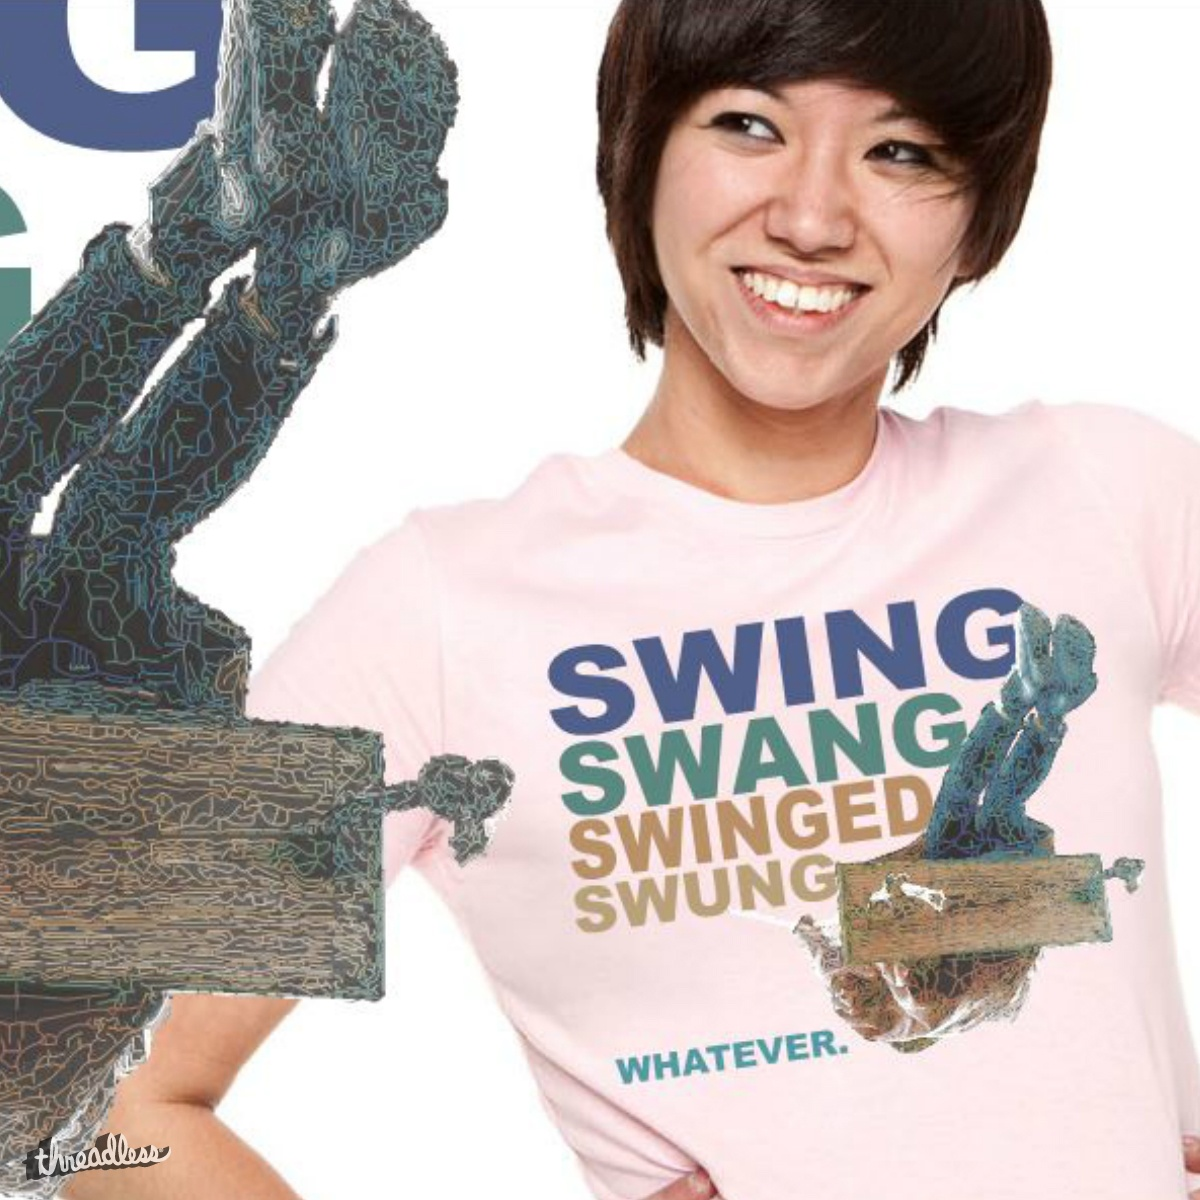 Swing Swang Swinged Swung... Whatever., a cool t-shirt design